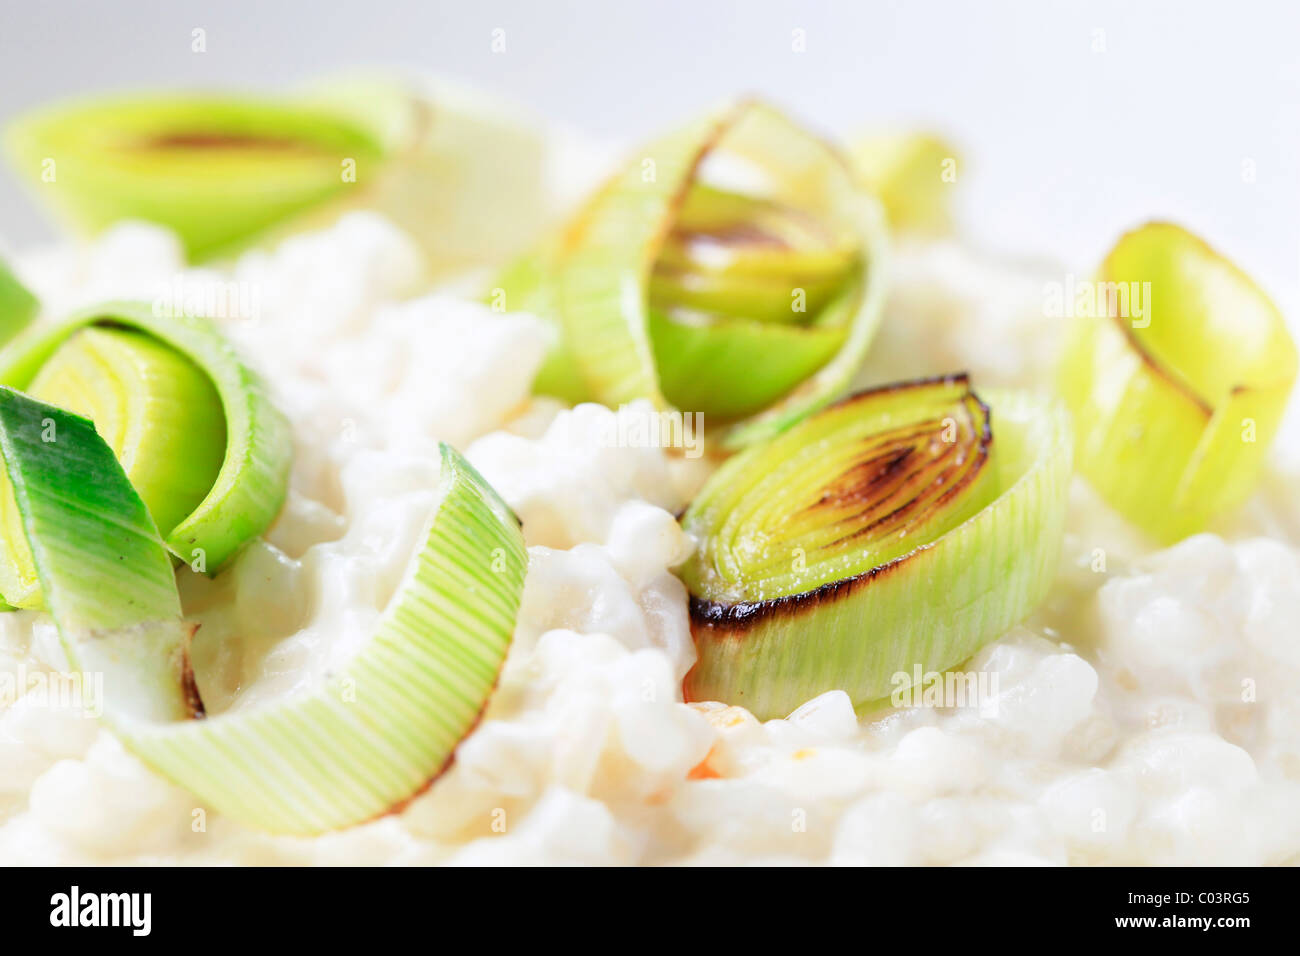 Bowl of rice pudding garnished with leek - Stock Image